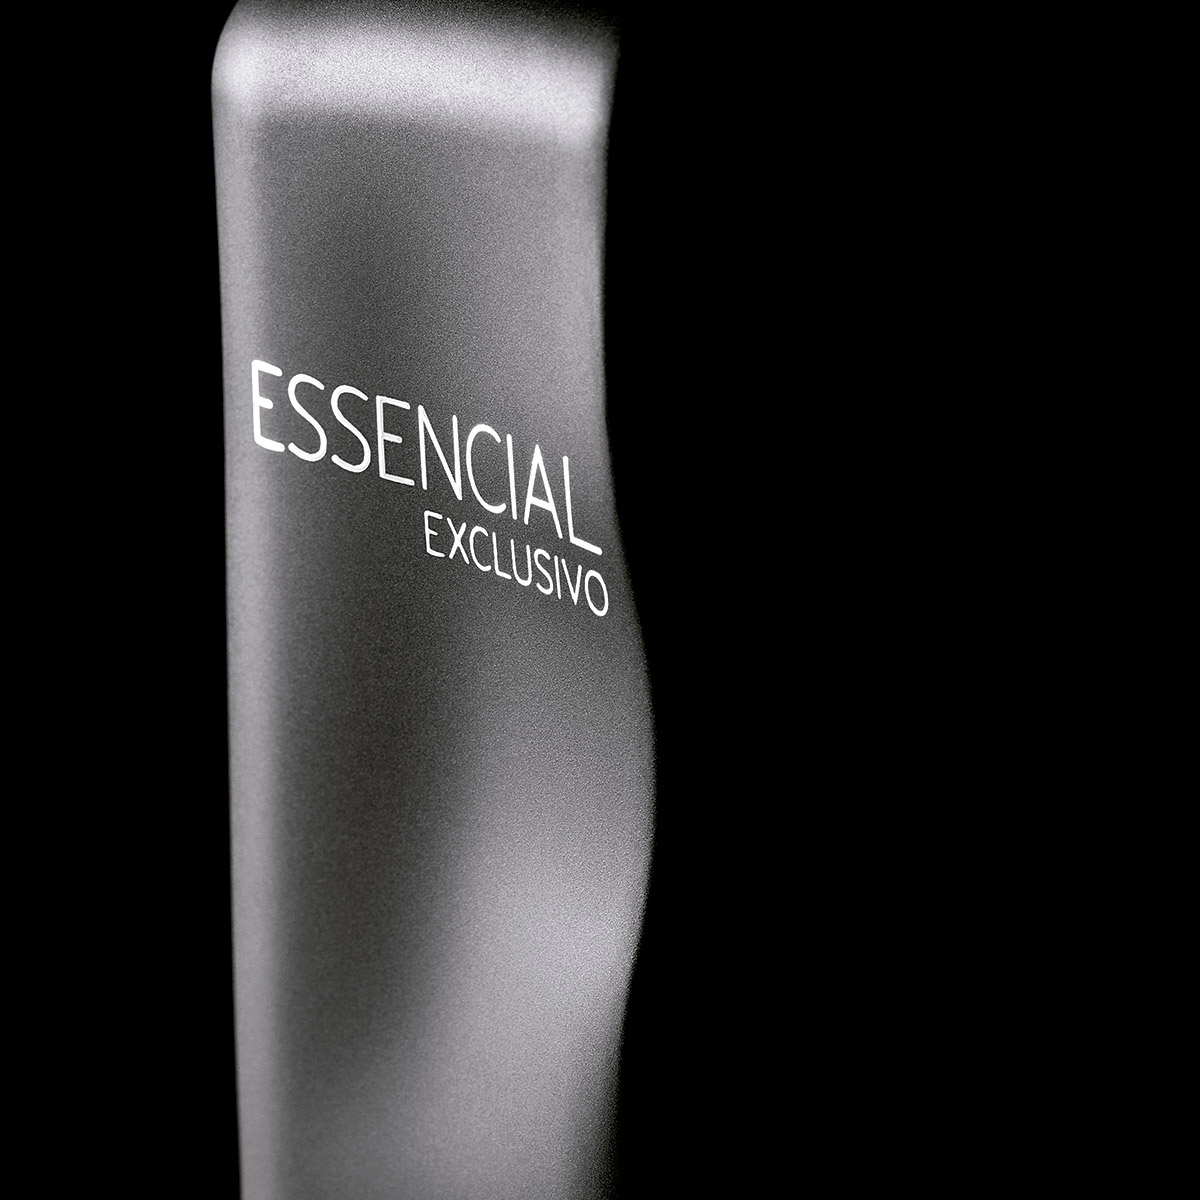 Deo Parfum Essencial Exclusivo Masculino - 100ml - 41807